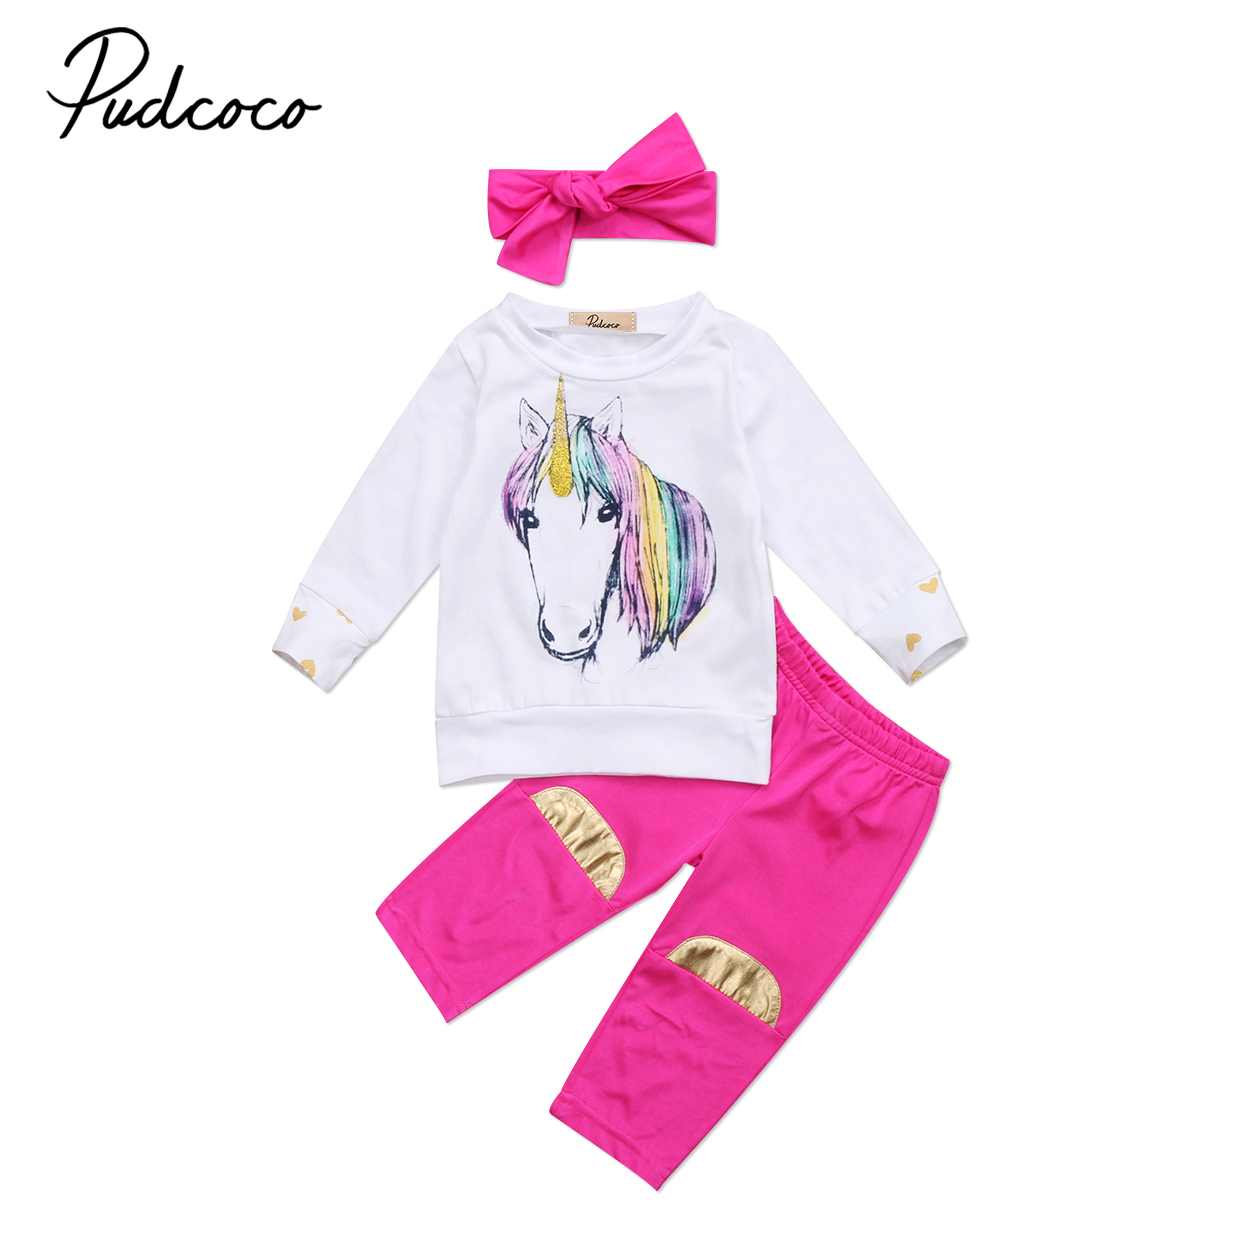 Pudcoco Cartoon Newborn Baby Clothing Sets Girls Kids Outfit Clothes Tops T-shirt Pants Headband Fashion Autumn Cute Baby Set newborn infant baby girls autumn clothes set cartoon print cotton long sleeve t shirt tops pants 2pcs outfit clothing sets page 8